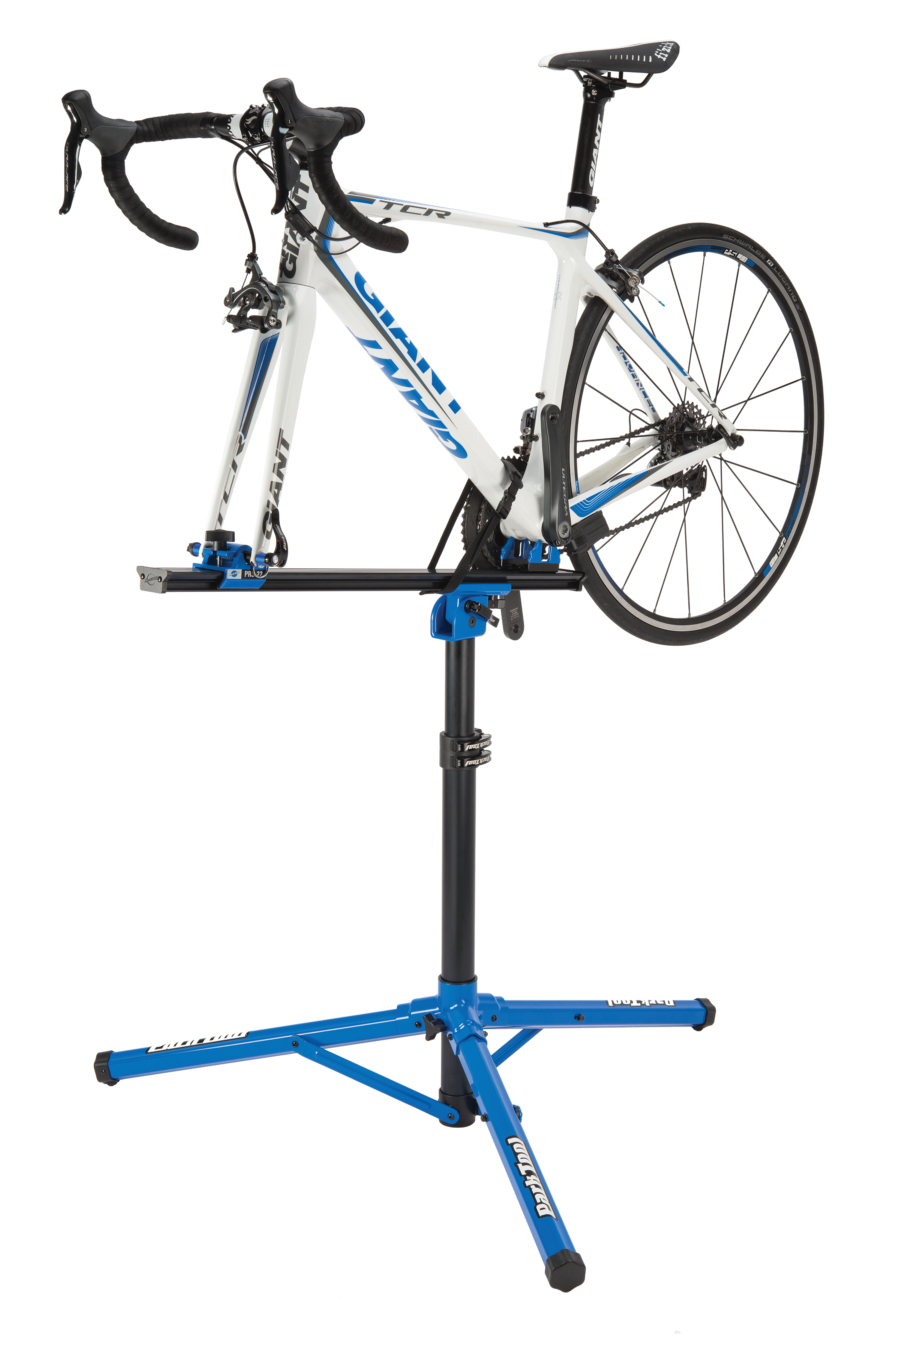 Park Tool PRS-22 Team Issue Repair Stand with bike mounted, enlarged